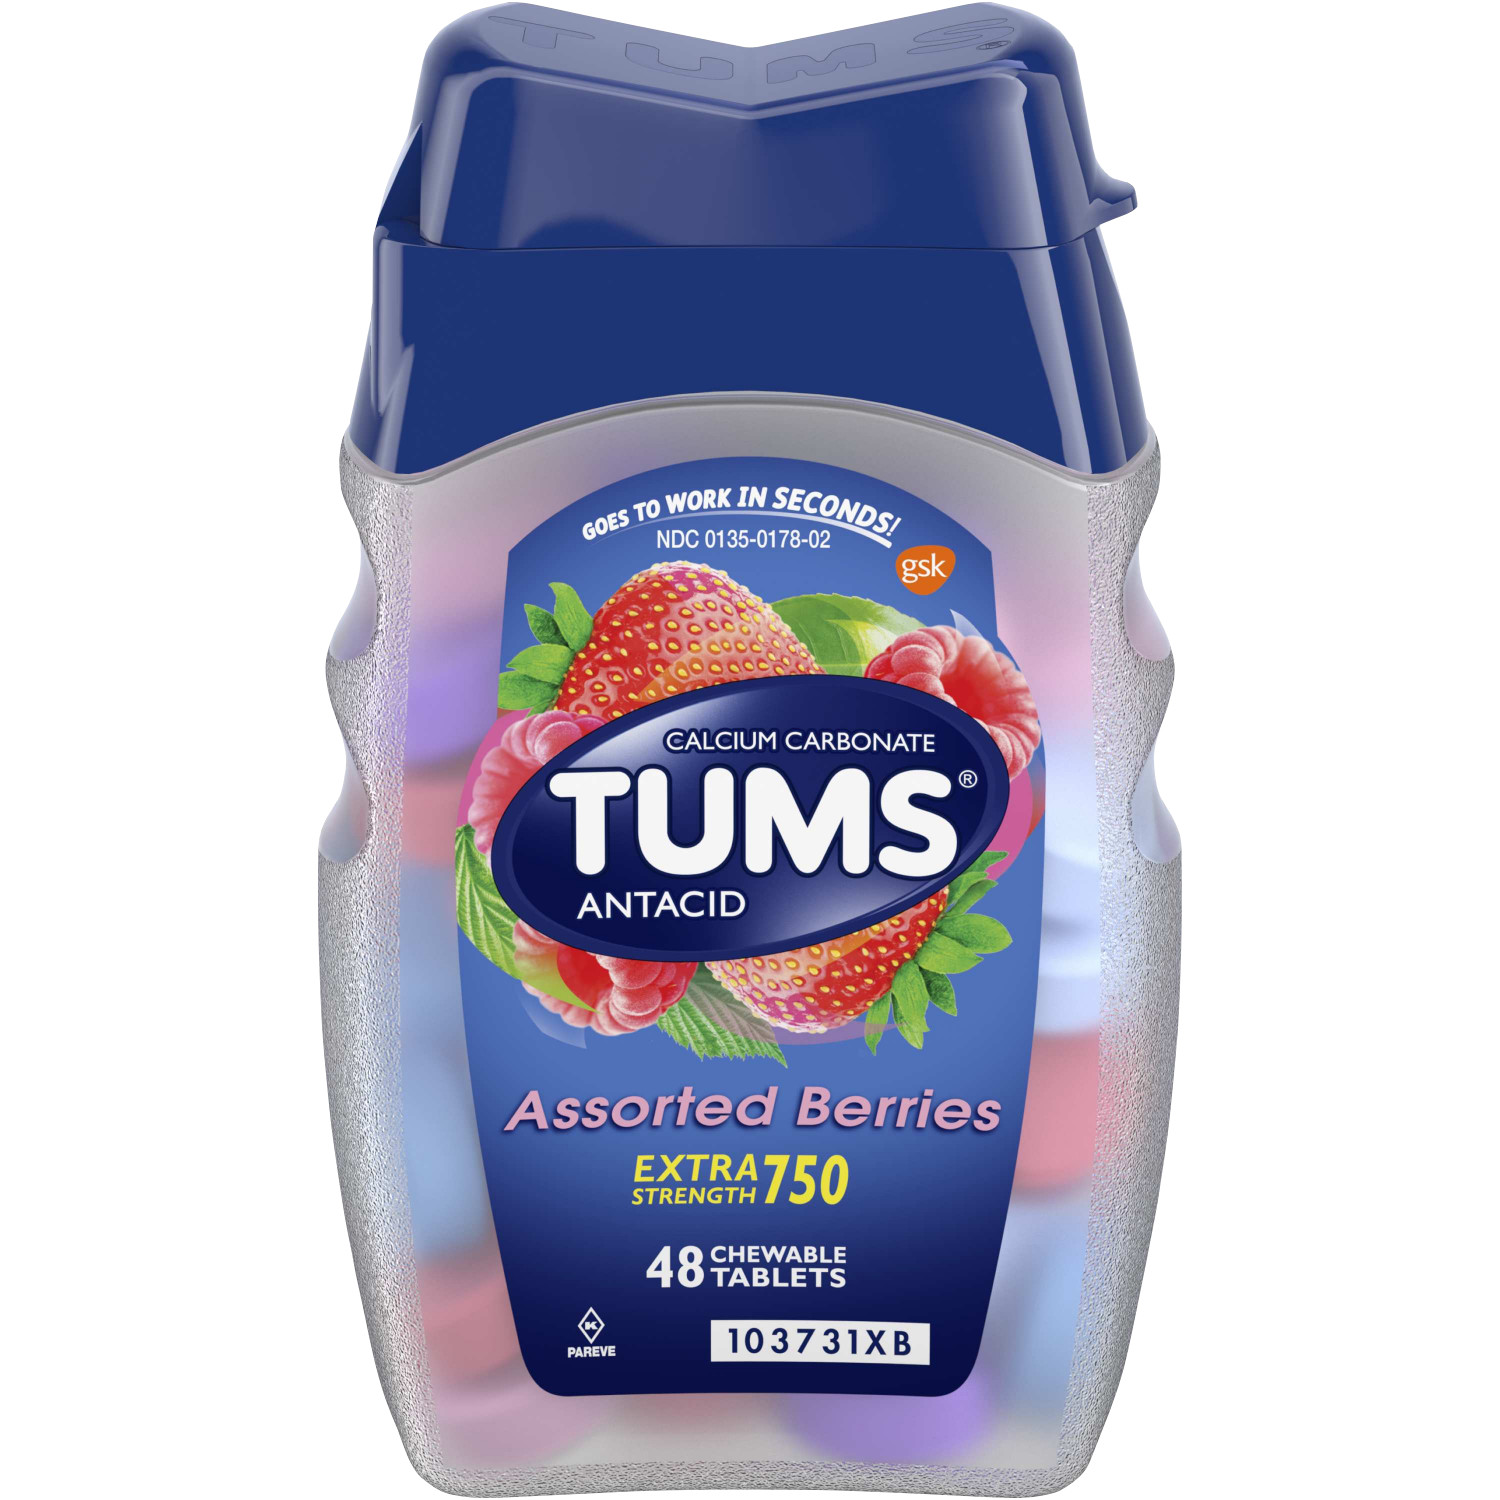 TUMS Antacid Chewable Tablets, Extra Strength for Heartburn Relief, Assorted Berries, 48 count